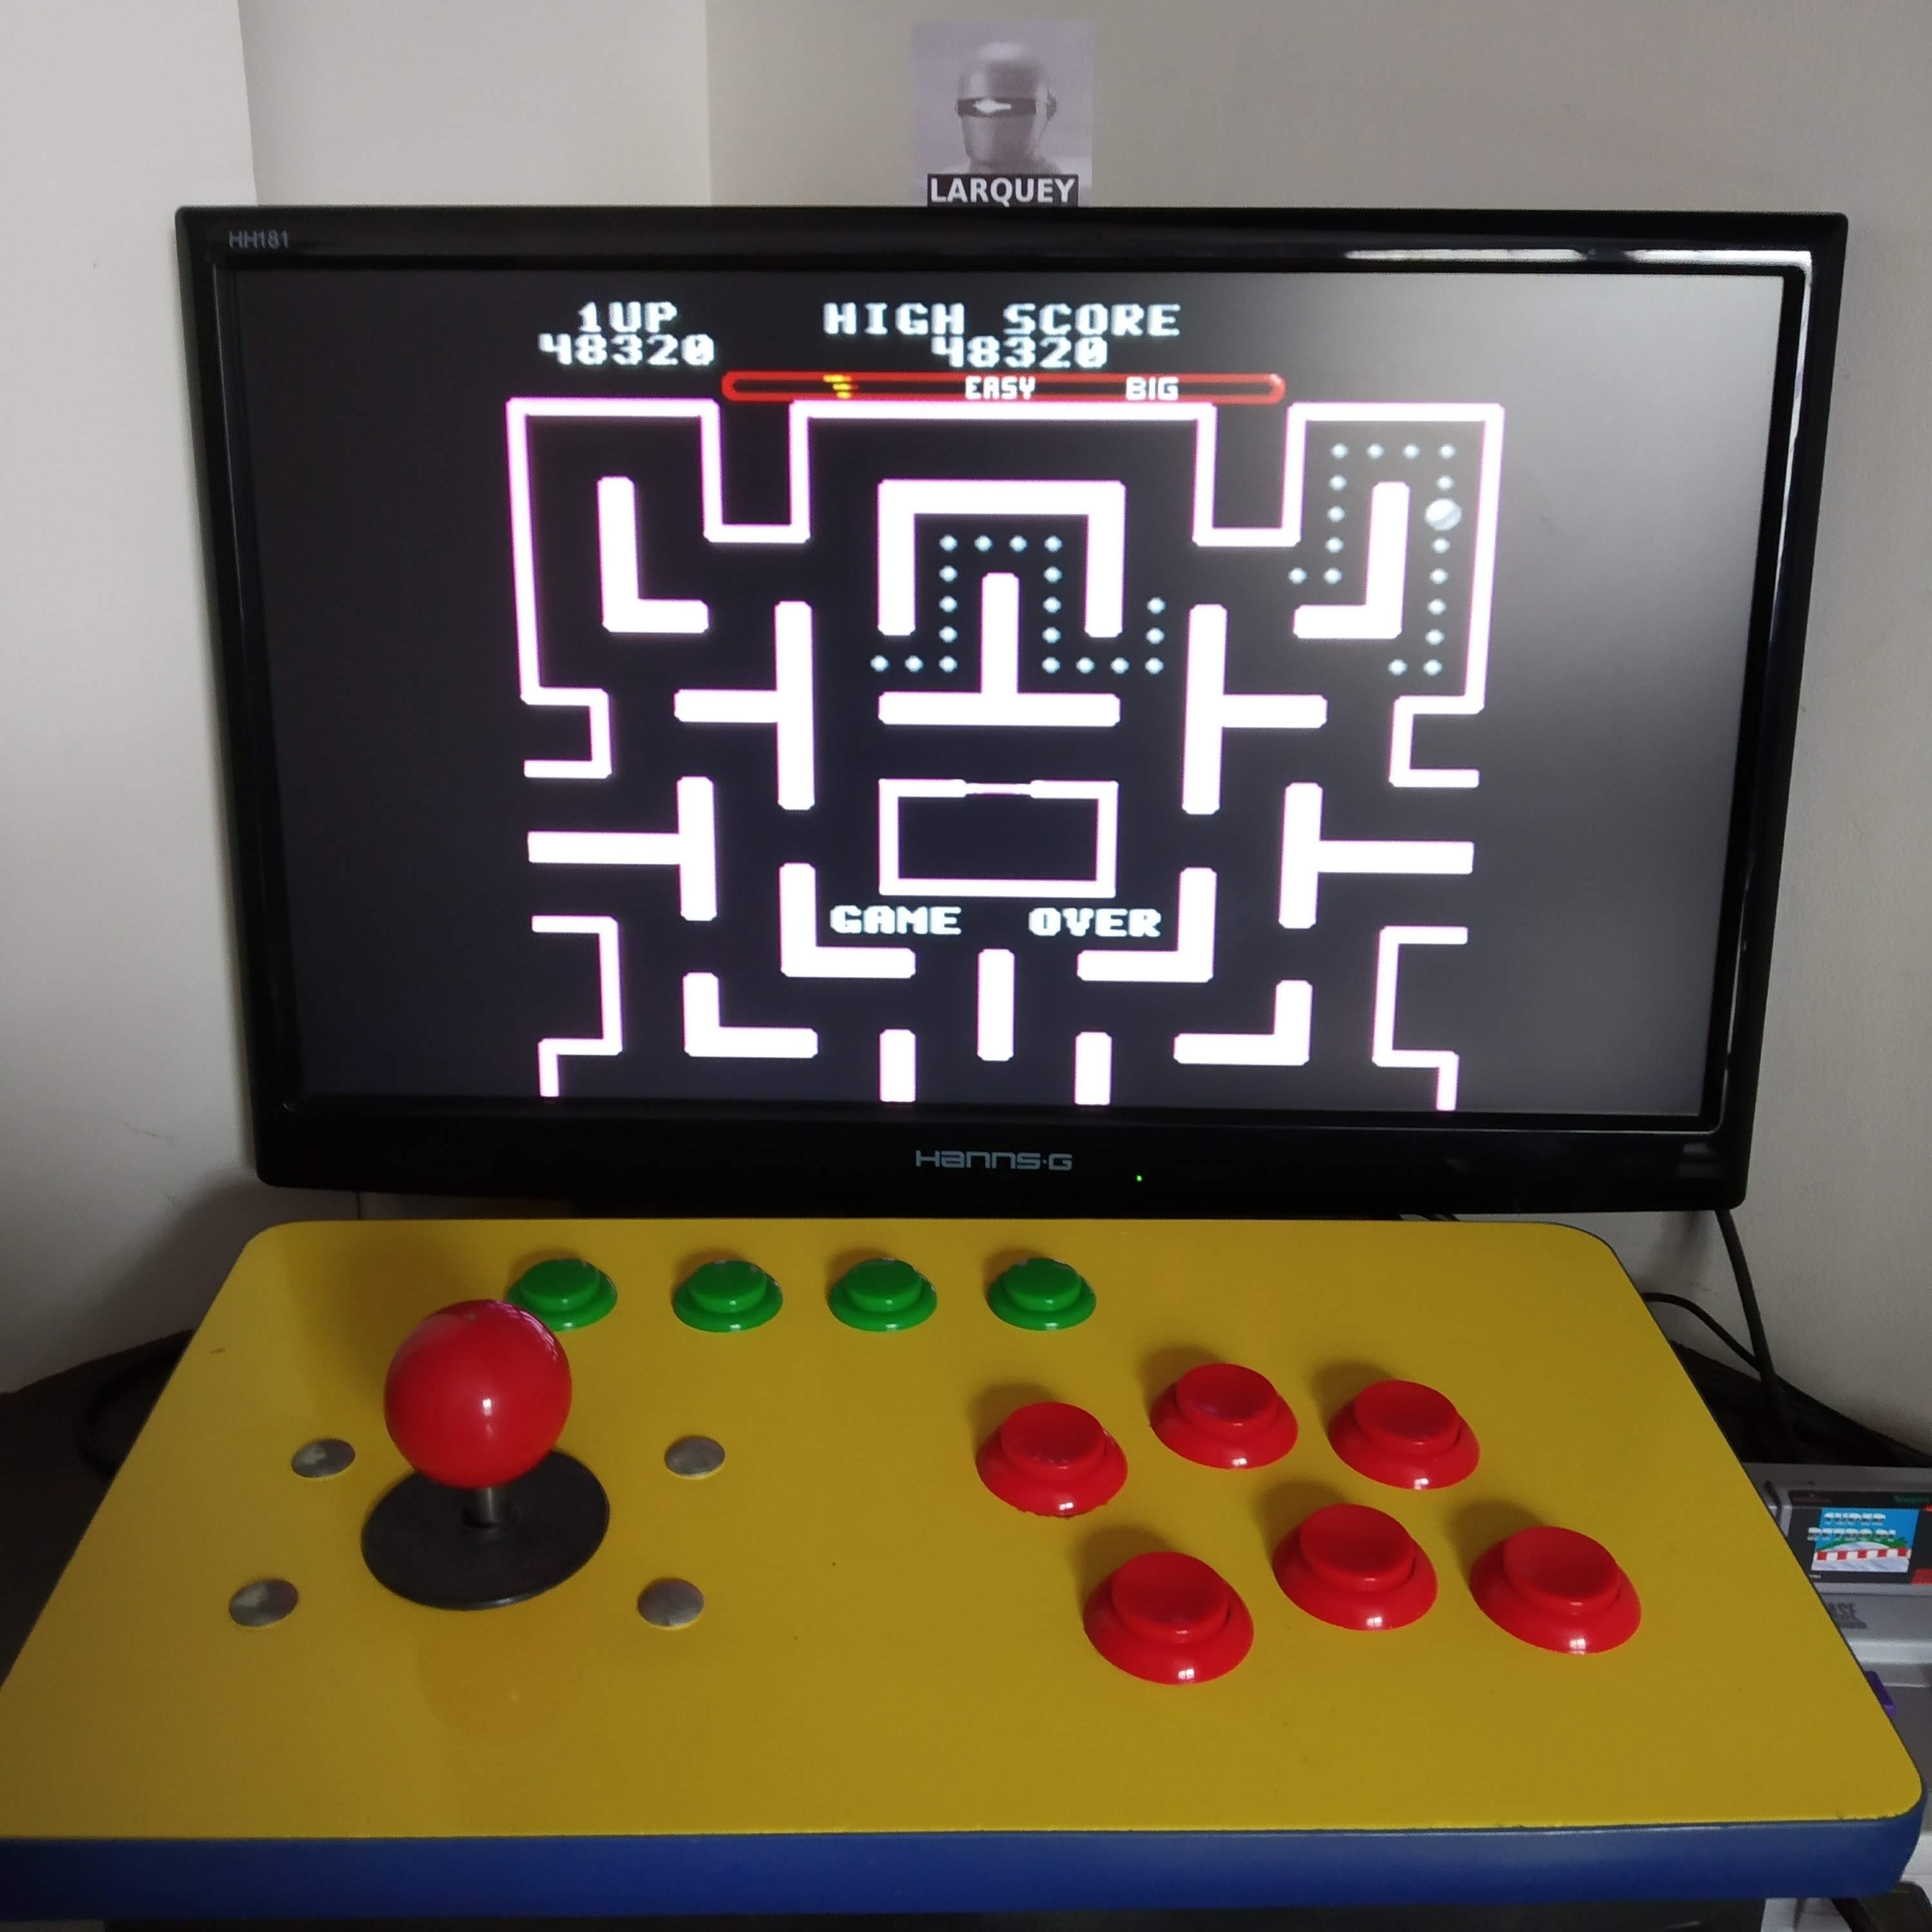 Larquey: Ms. Pac-Man [On/ Easy/ Big/ Level 1 Start] (SNES/Super Famicom Emulated) 48,320 points on 2020-08-16 08:03:16